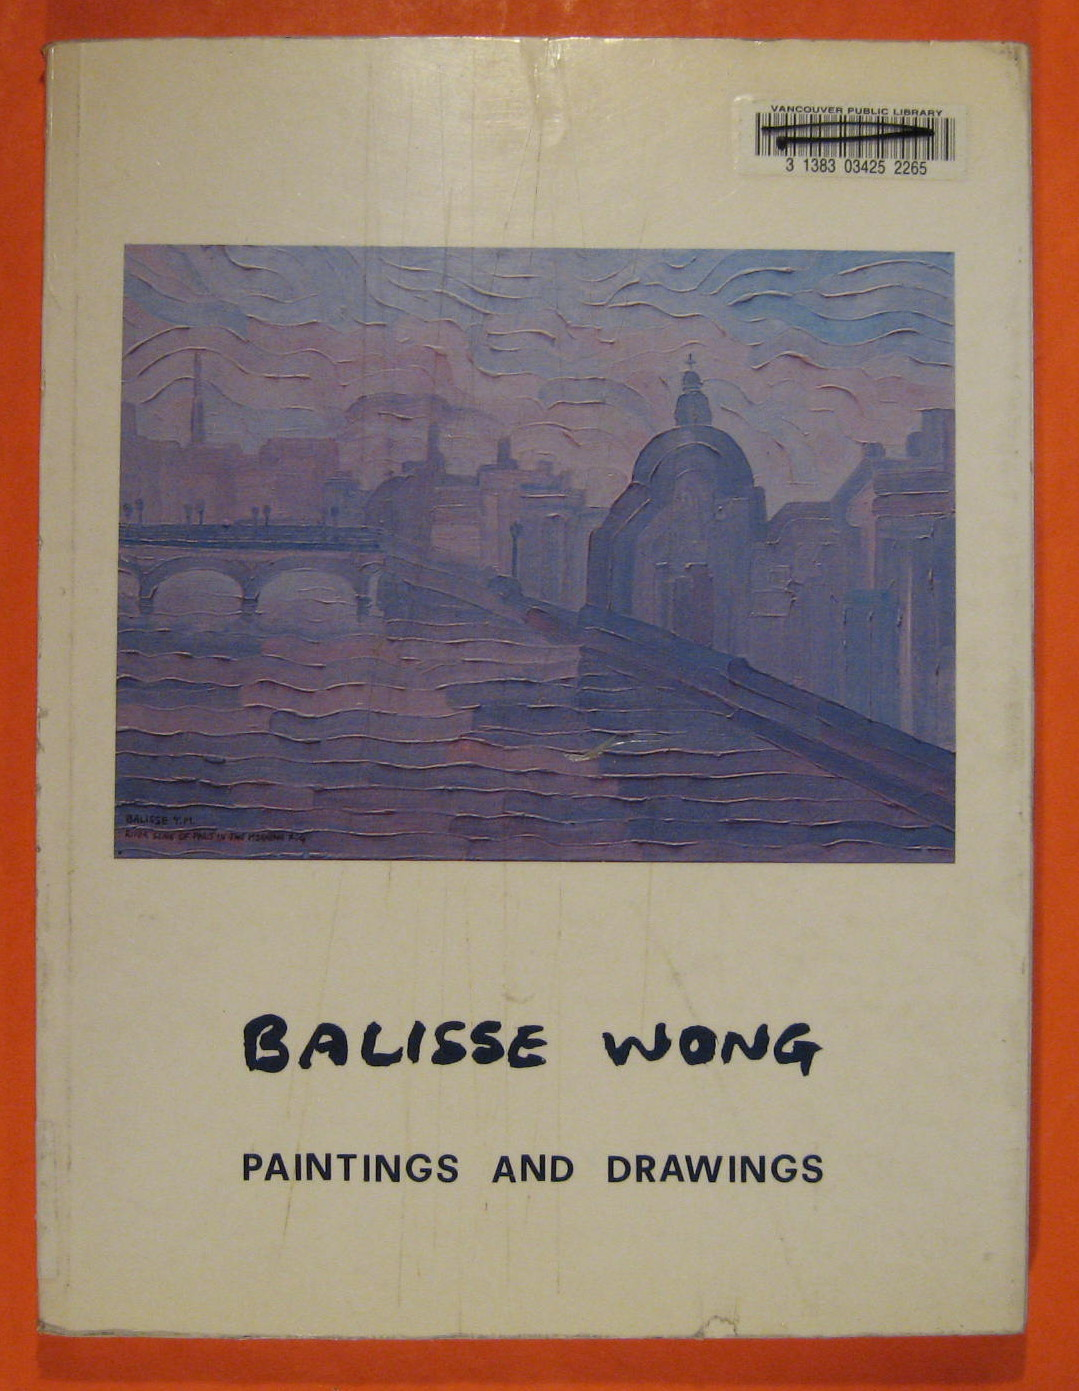 Balisse Wong: Paintings and Drawings, No Author